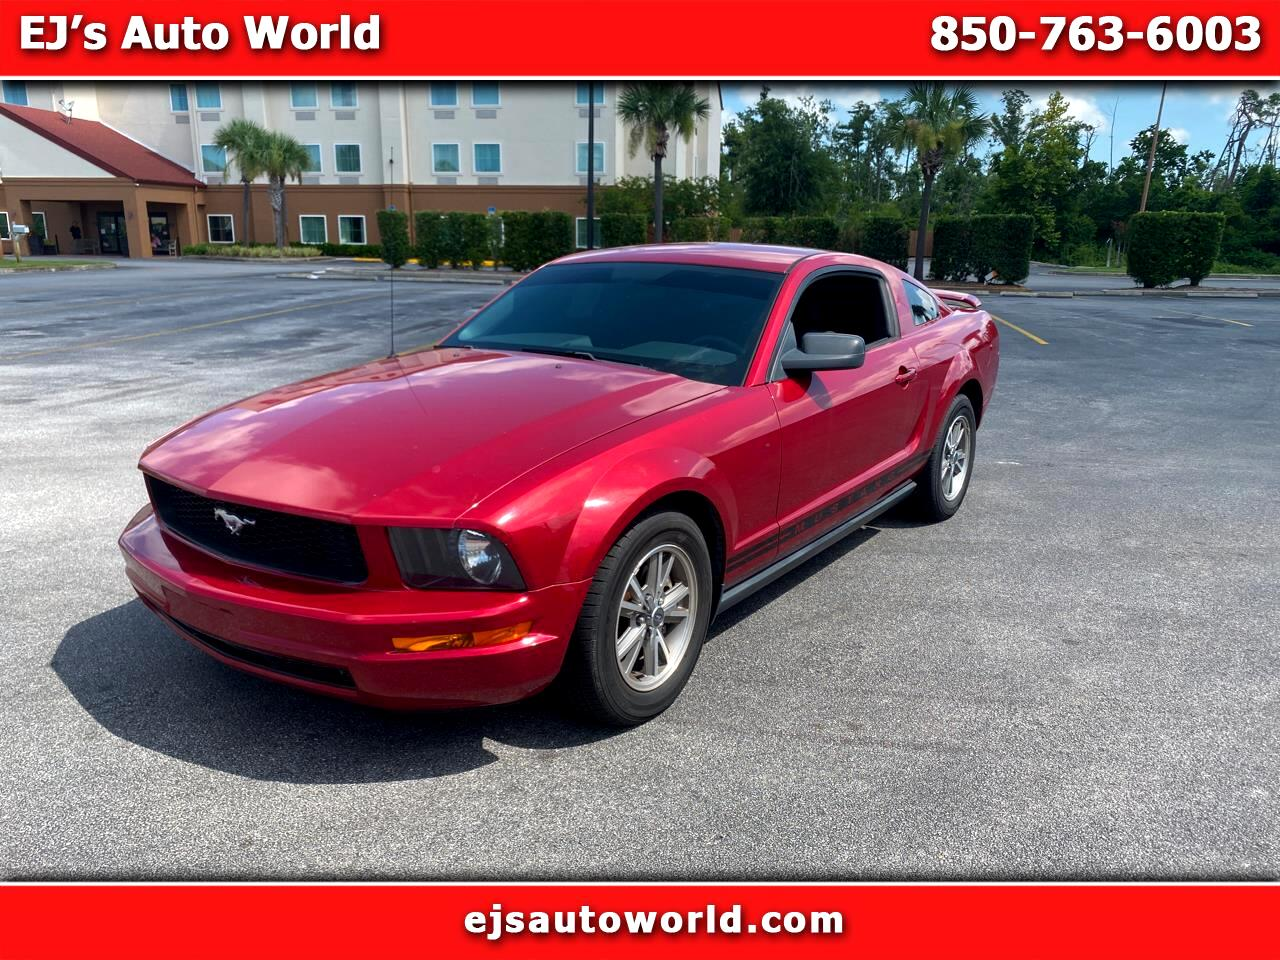 Ford Mustang 2dr Cpe Deluxe 2005